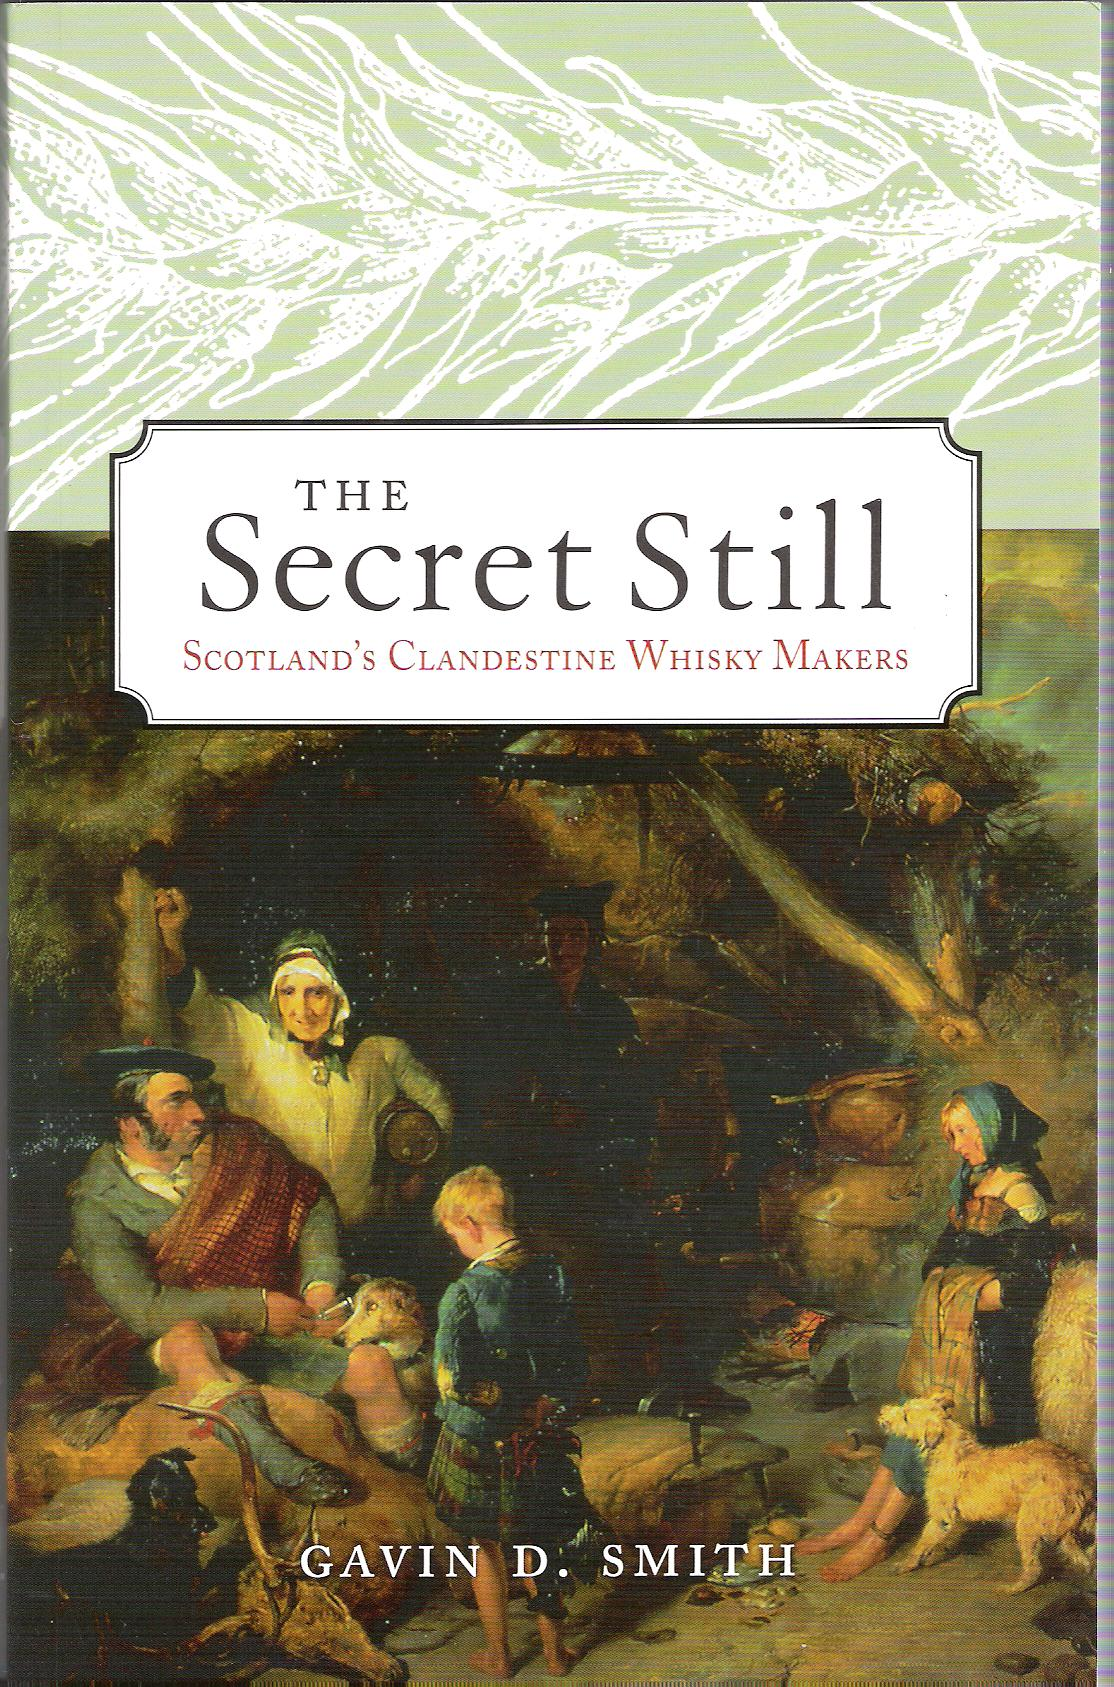 Image for The Secret Still: Scotland's Clandestine Whisky Makers.